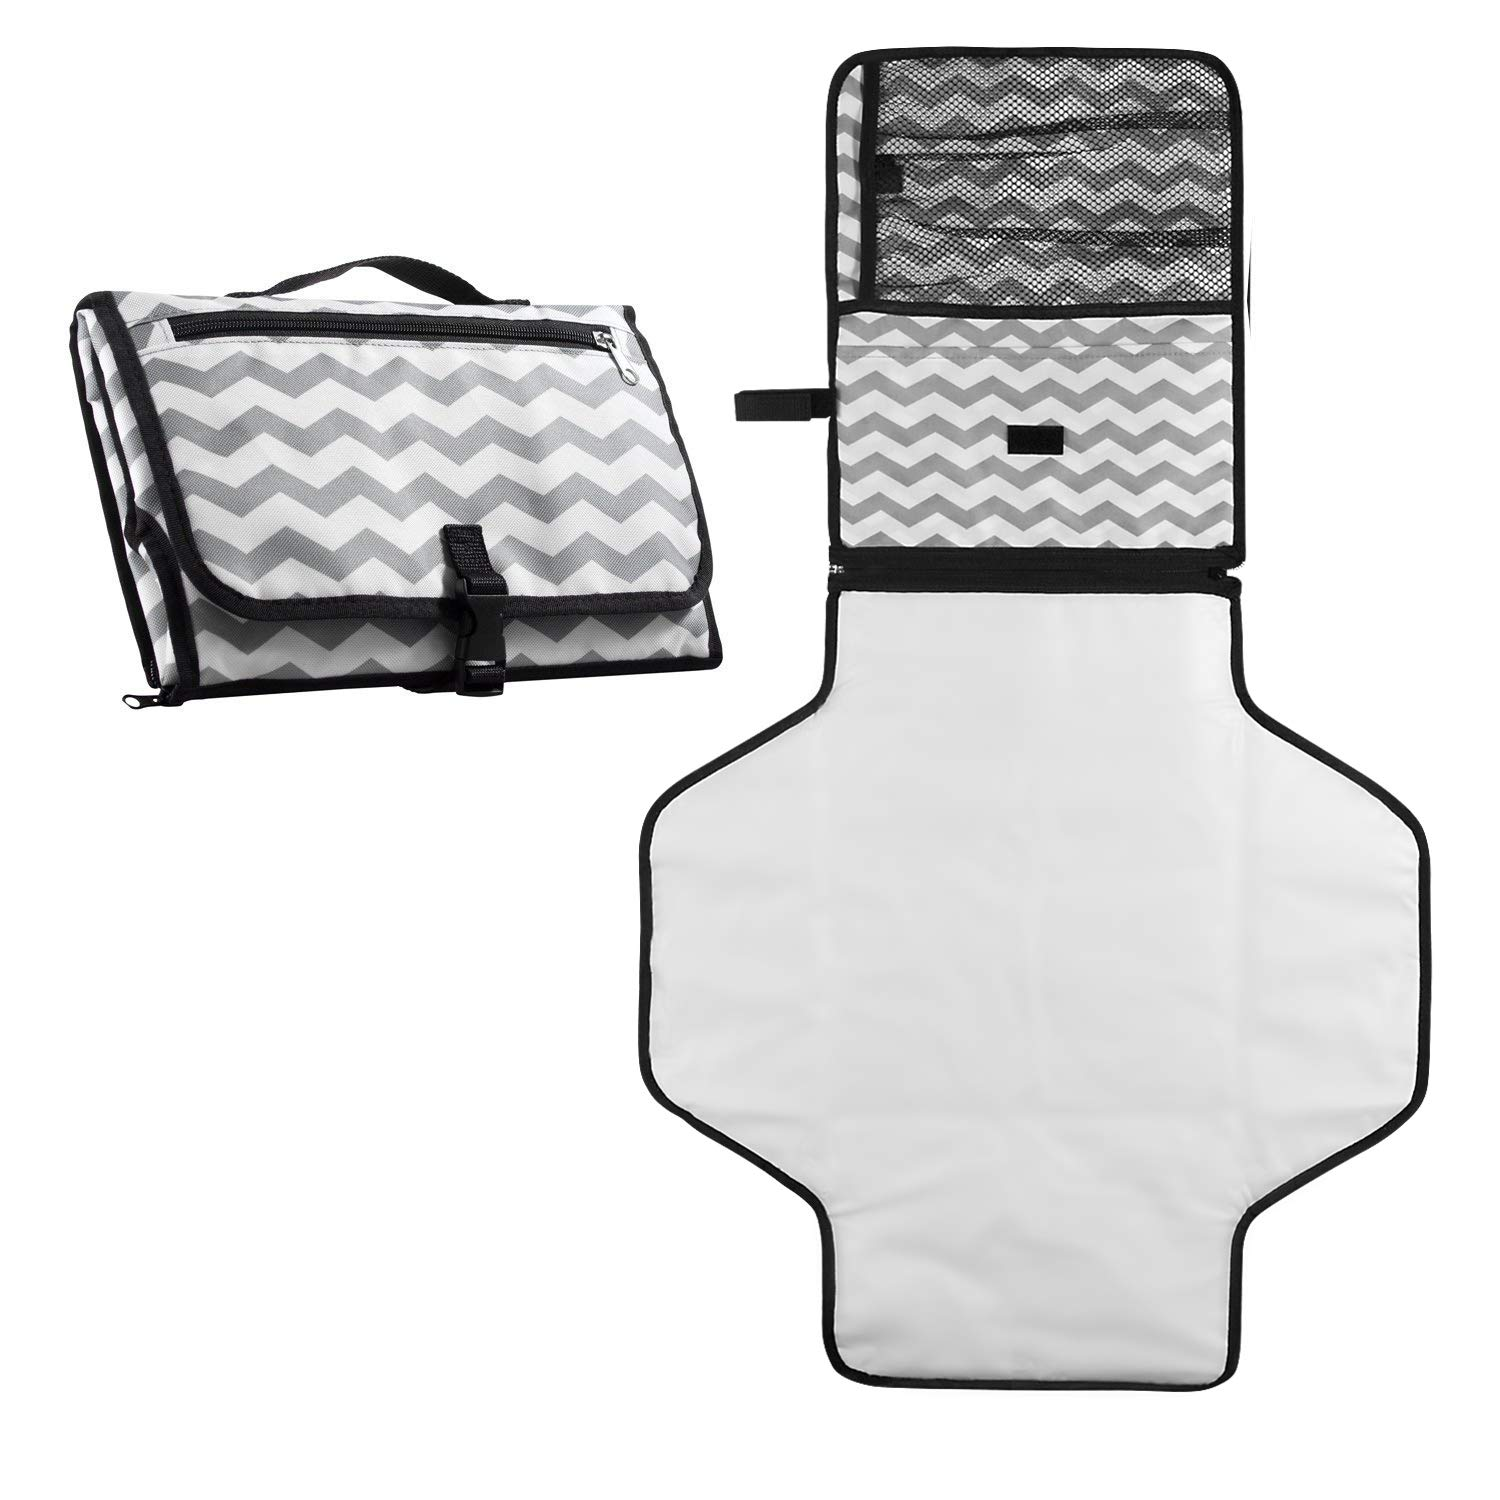 Baby Diaper Changing Pad, Fushop Travel Diaper Changing Station Portable Change Diaper Bag Nappy Changing Mat Waterproof Clutch Set(White) F320a